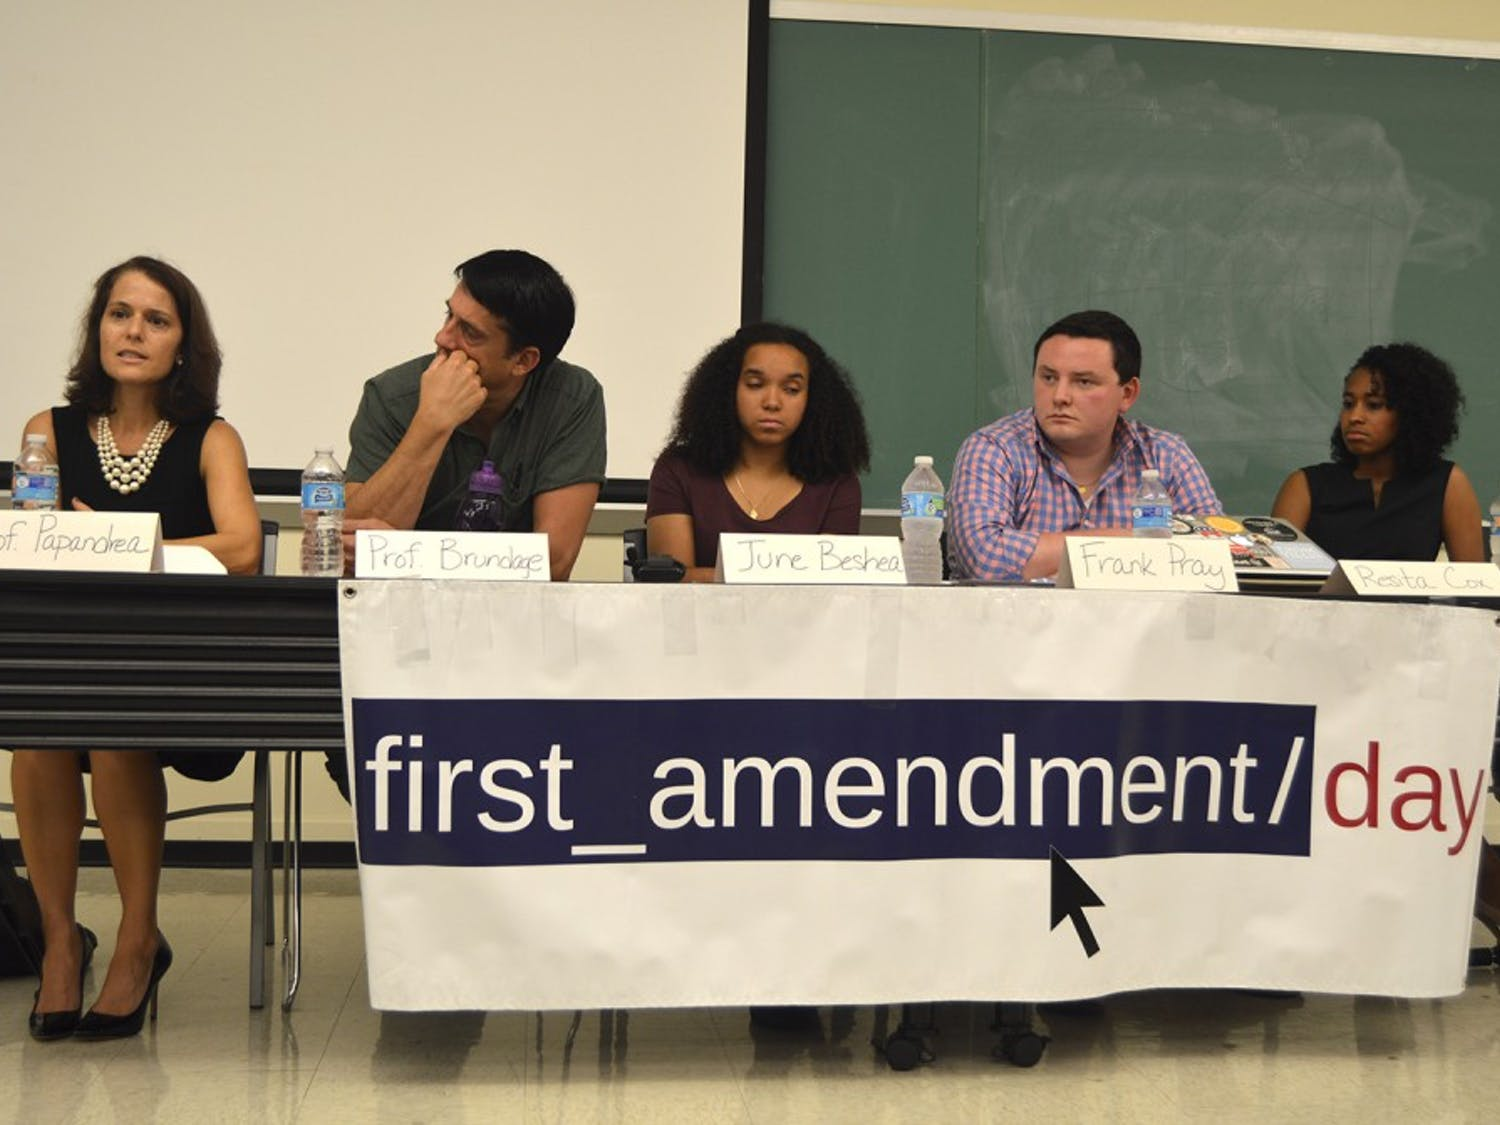 The Symbols of the South panel prepares to discuss different First Amendment issues, including Silent Sam, Saunders Hall, and the Confederate flag at First Amendment Day.